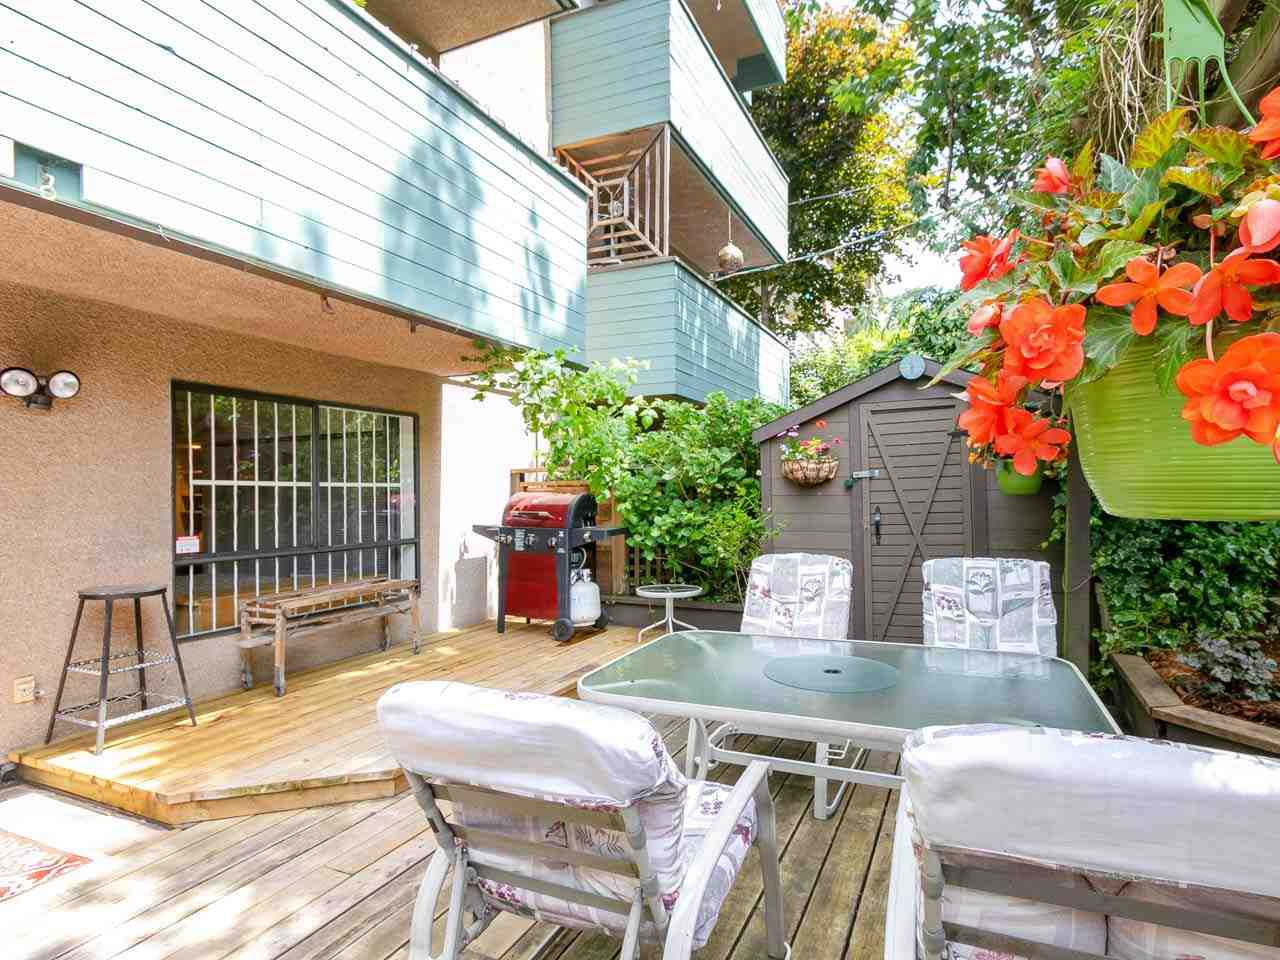 "Photo 2: Photos: 104 1516 CHARLES Street in Vancouver: Grandview VE Condo for sale in ""GARDEN TERRACE"" (Vancouver East)  : MLS®# R2295886"